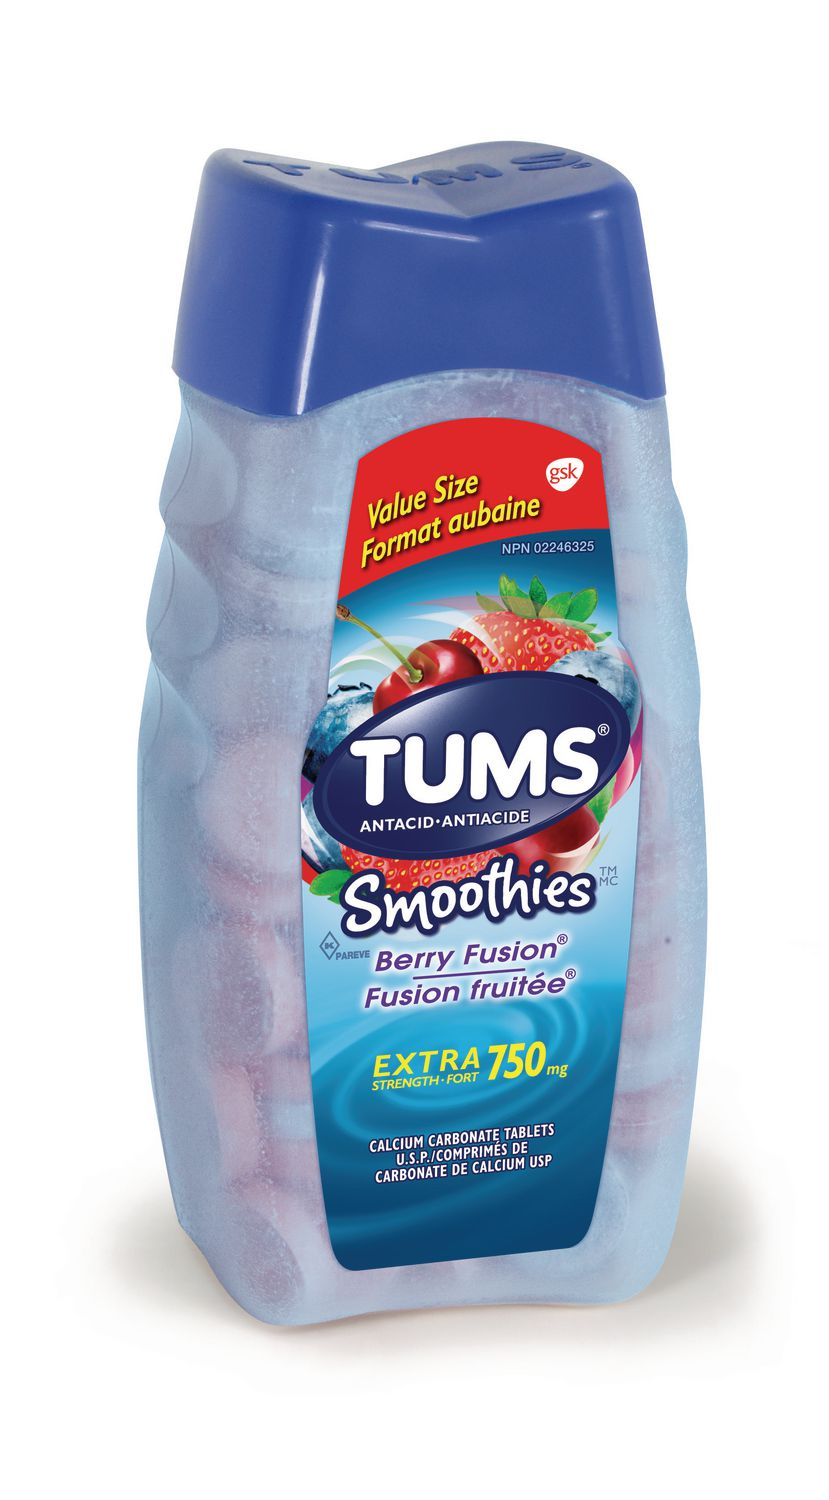 tums extra strength 750mg smoothies antacid for heartburn relief